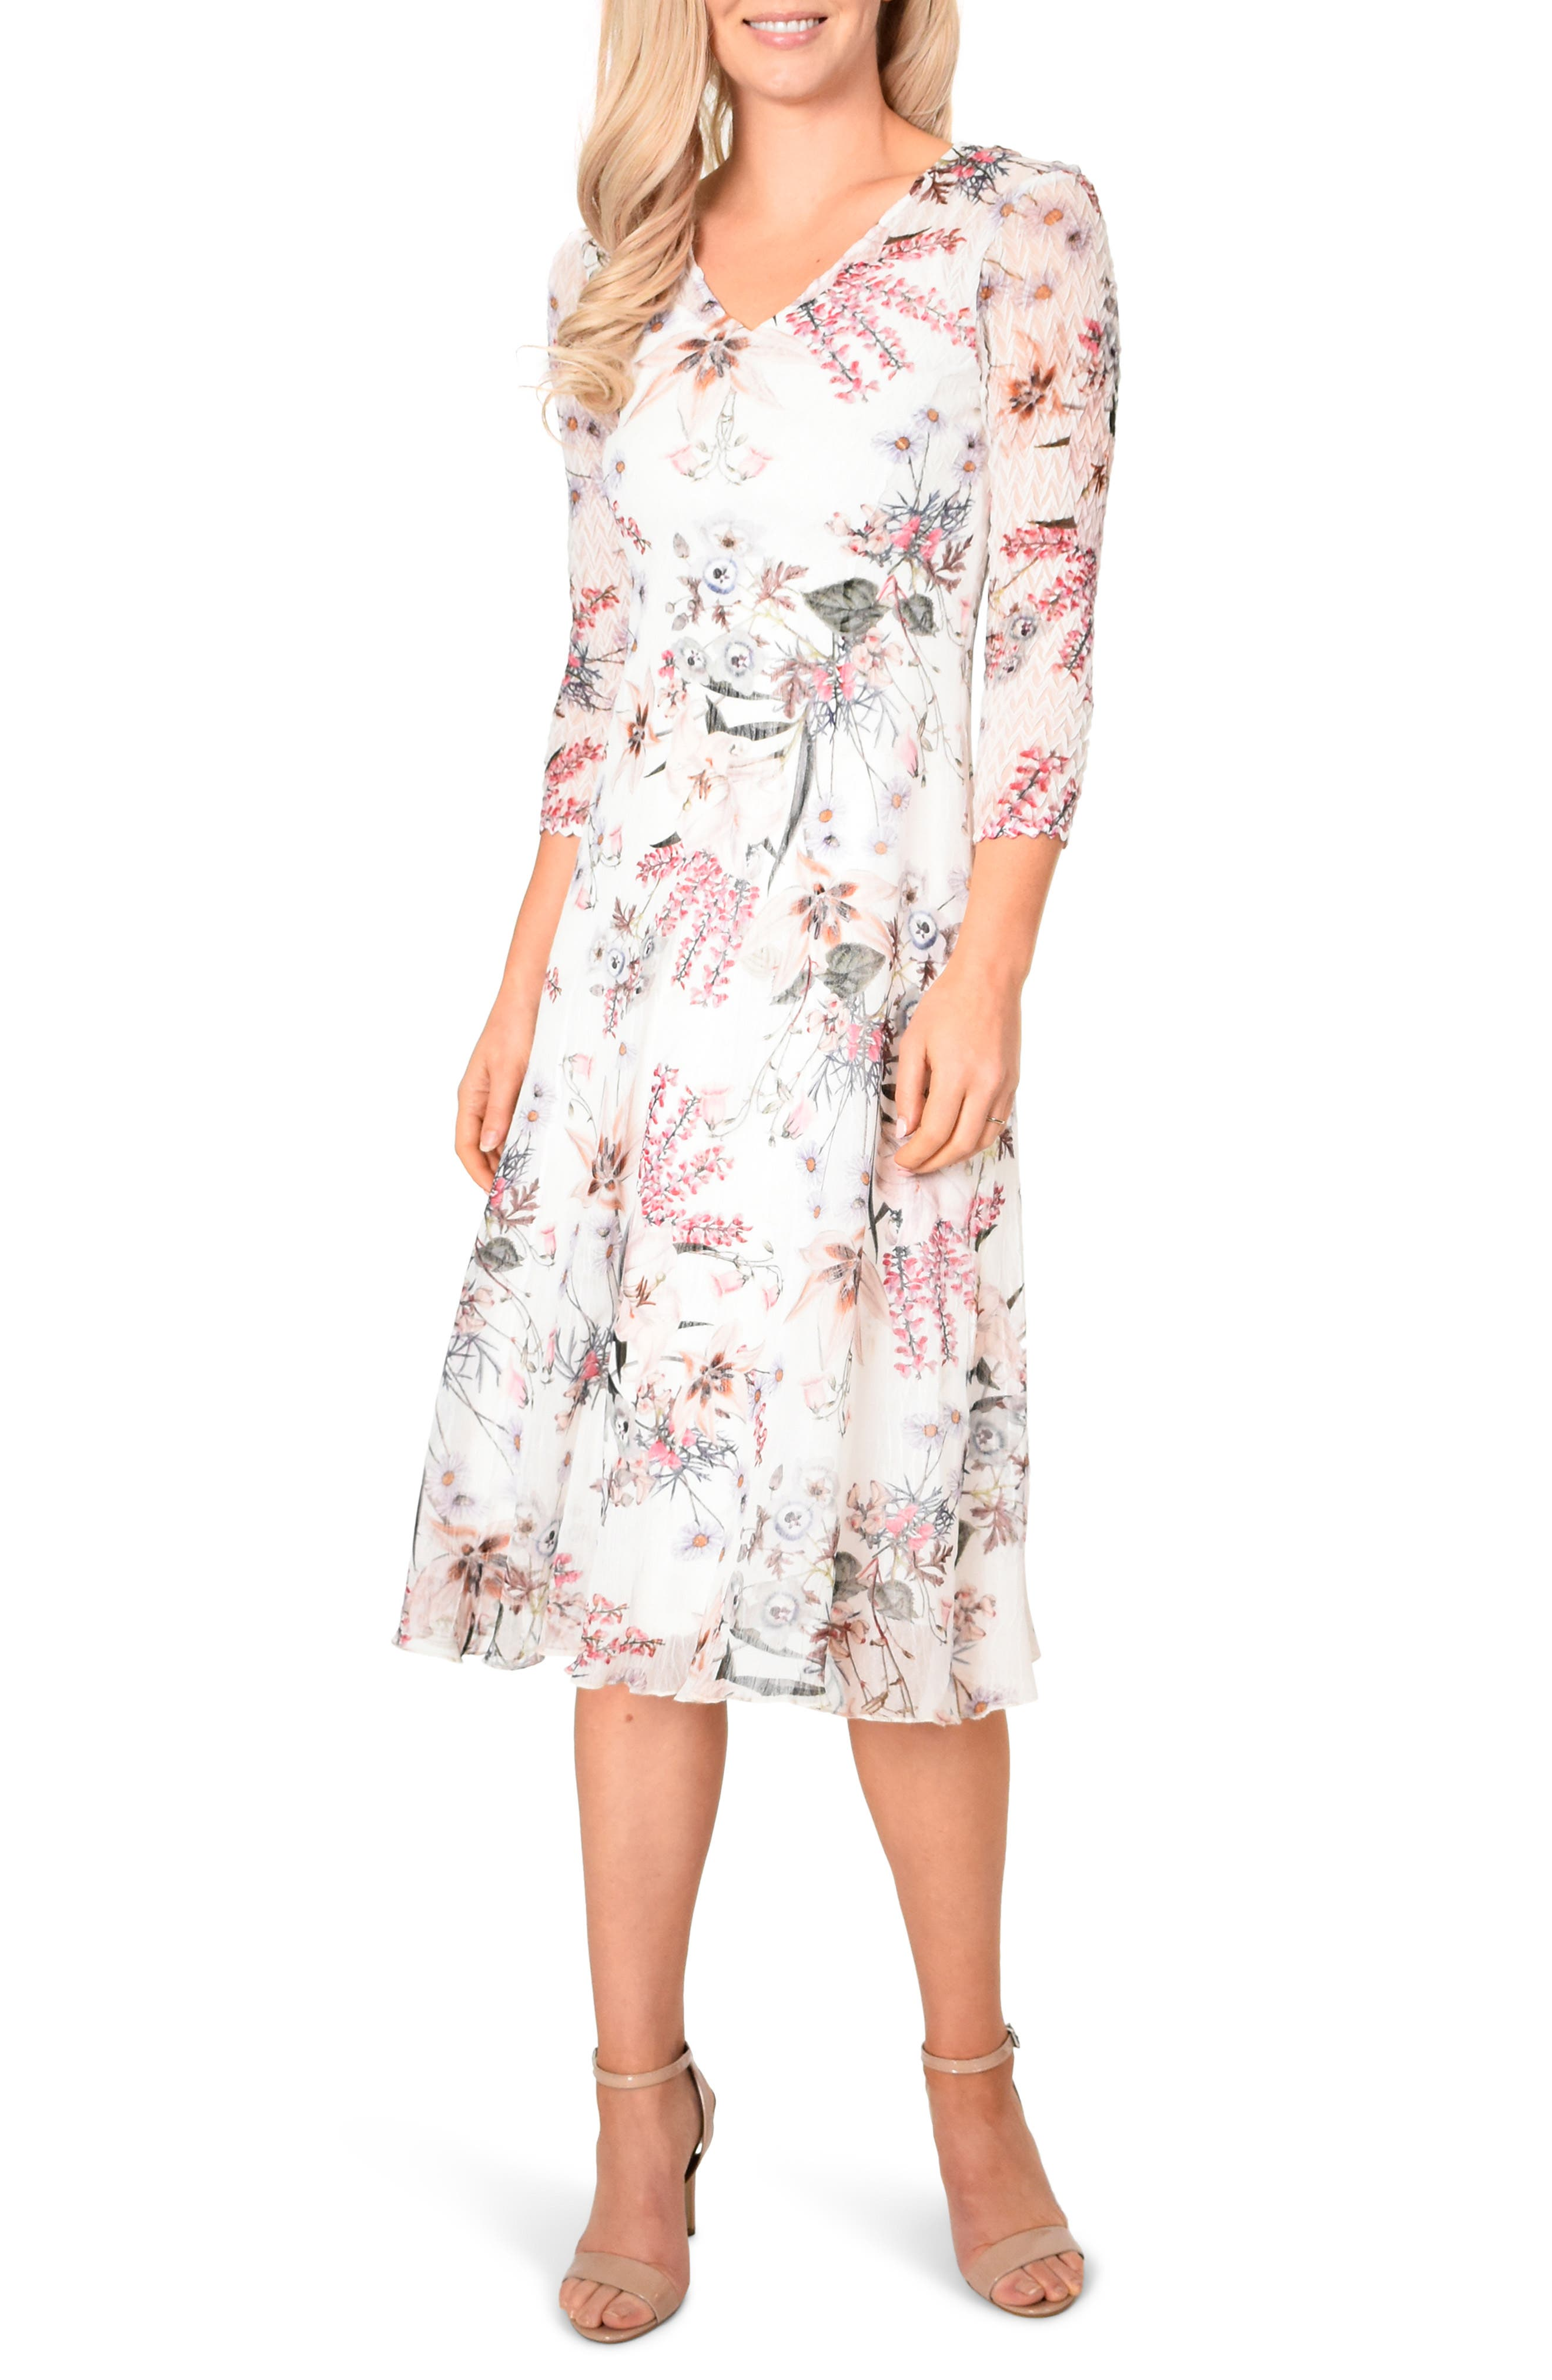 KOMAROV Floral Chiffon MIdi Dress, Main, color, SPRING ORCHARD